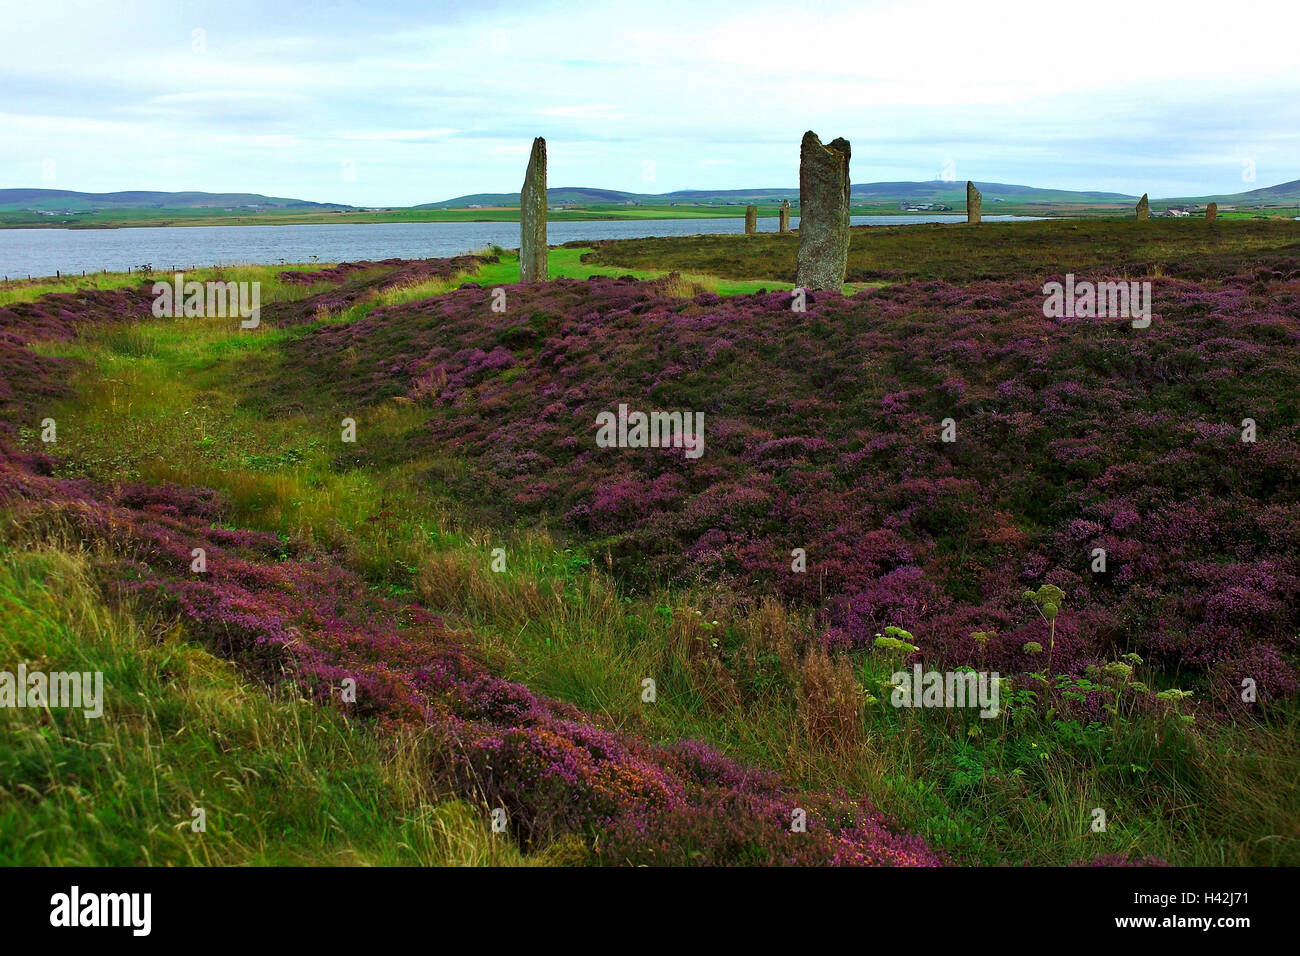 Scotland, Orkney islands, Main country, stone circle, ring Brodgar, Great Britain, south Orkney islands, Orkneyinseln, - Stock Image